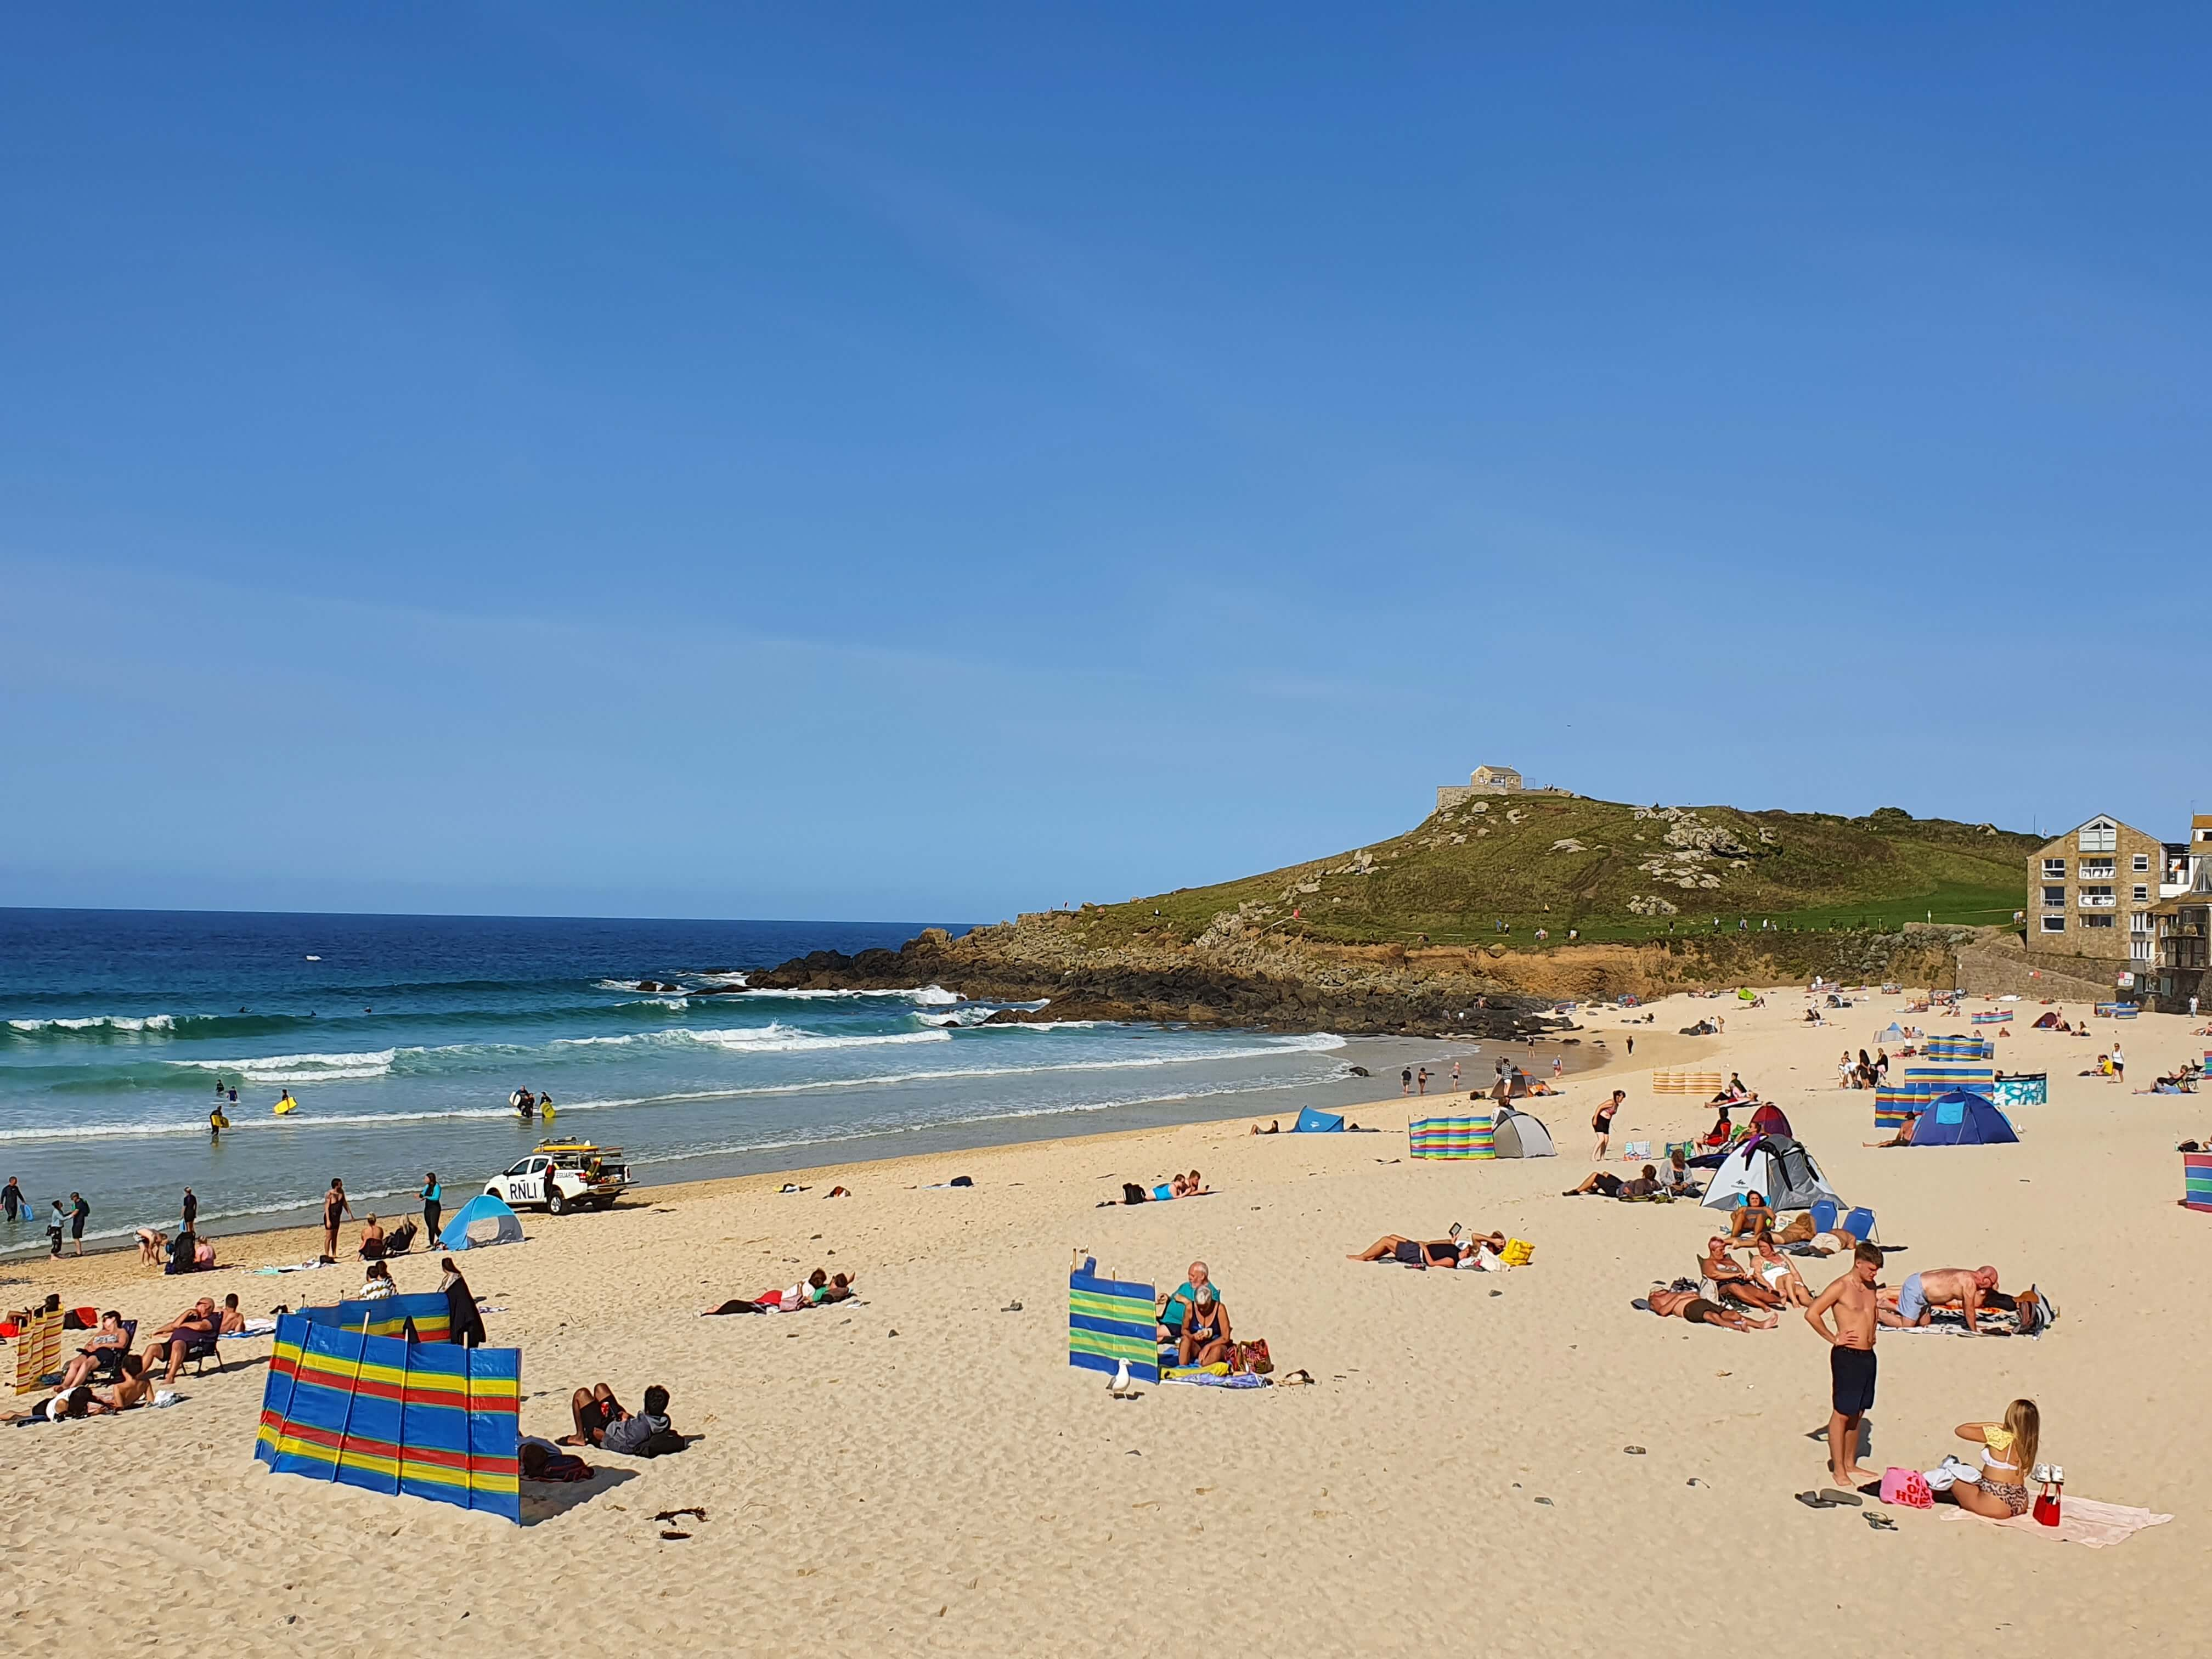 Porthmeor Beach in St Ives - pictured, people sunbathing on the white-sand beach